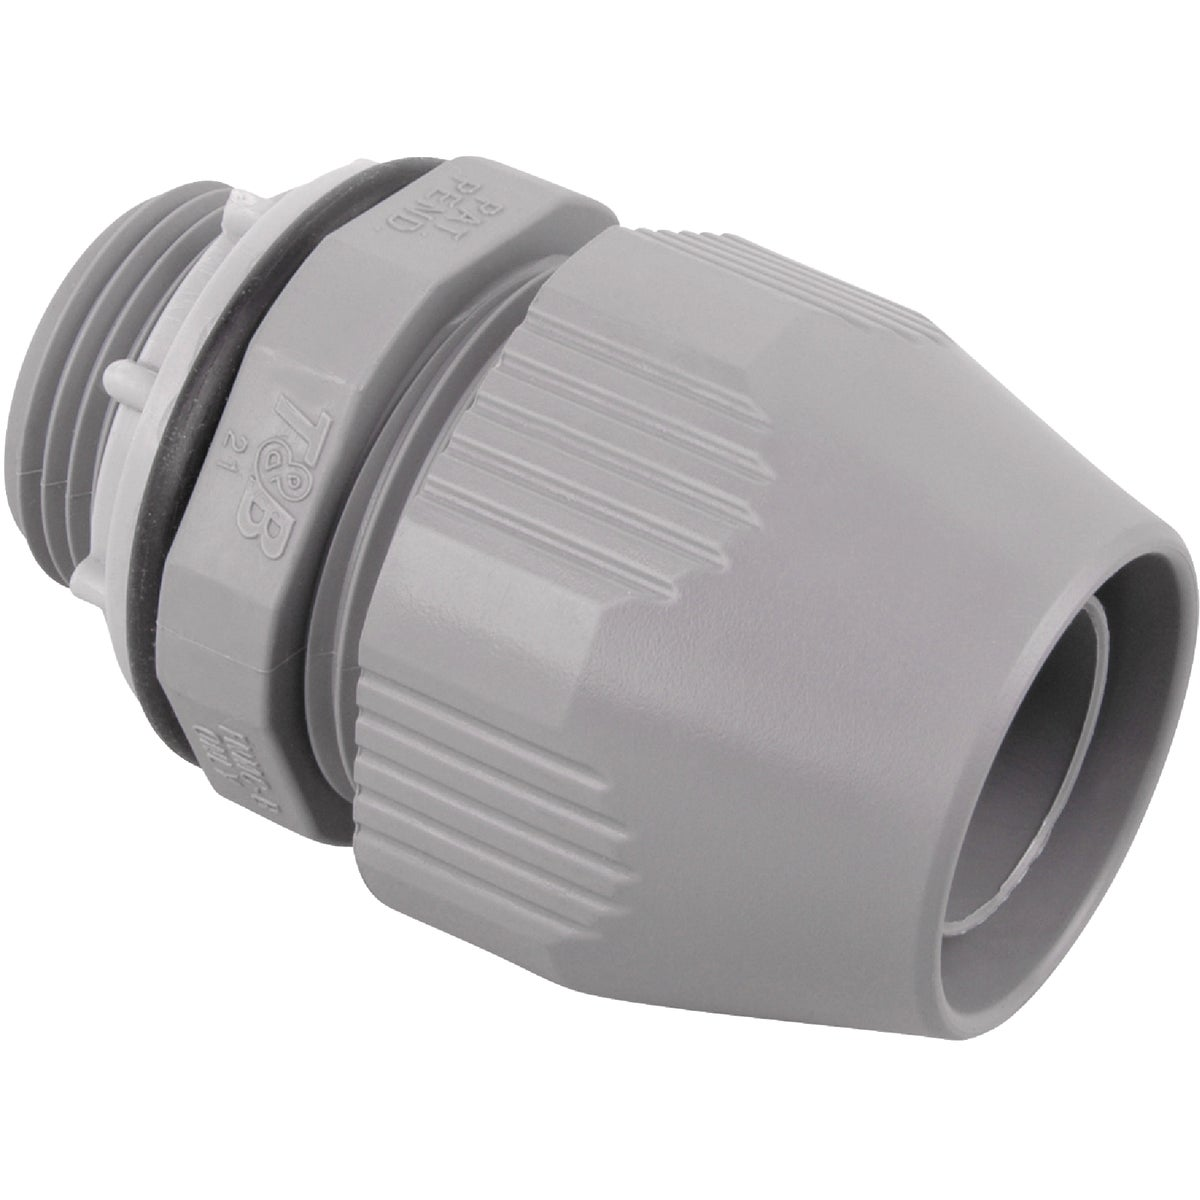 "3/4"" LIQTITE CONNECTOR - LT502-1 by Thomas & Betts"